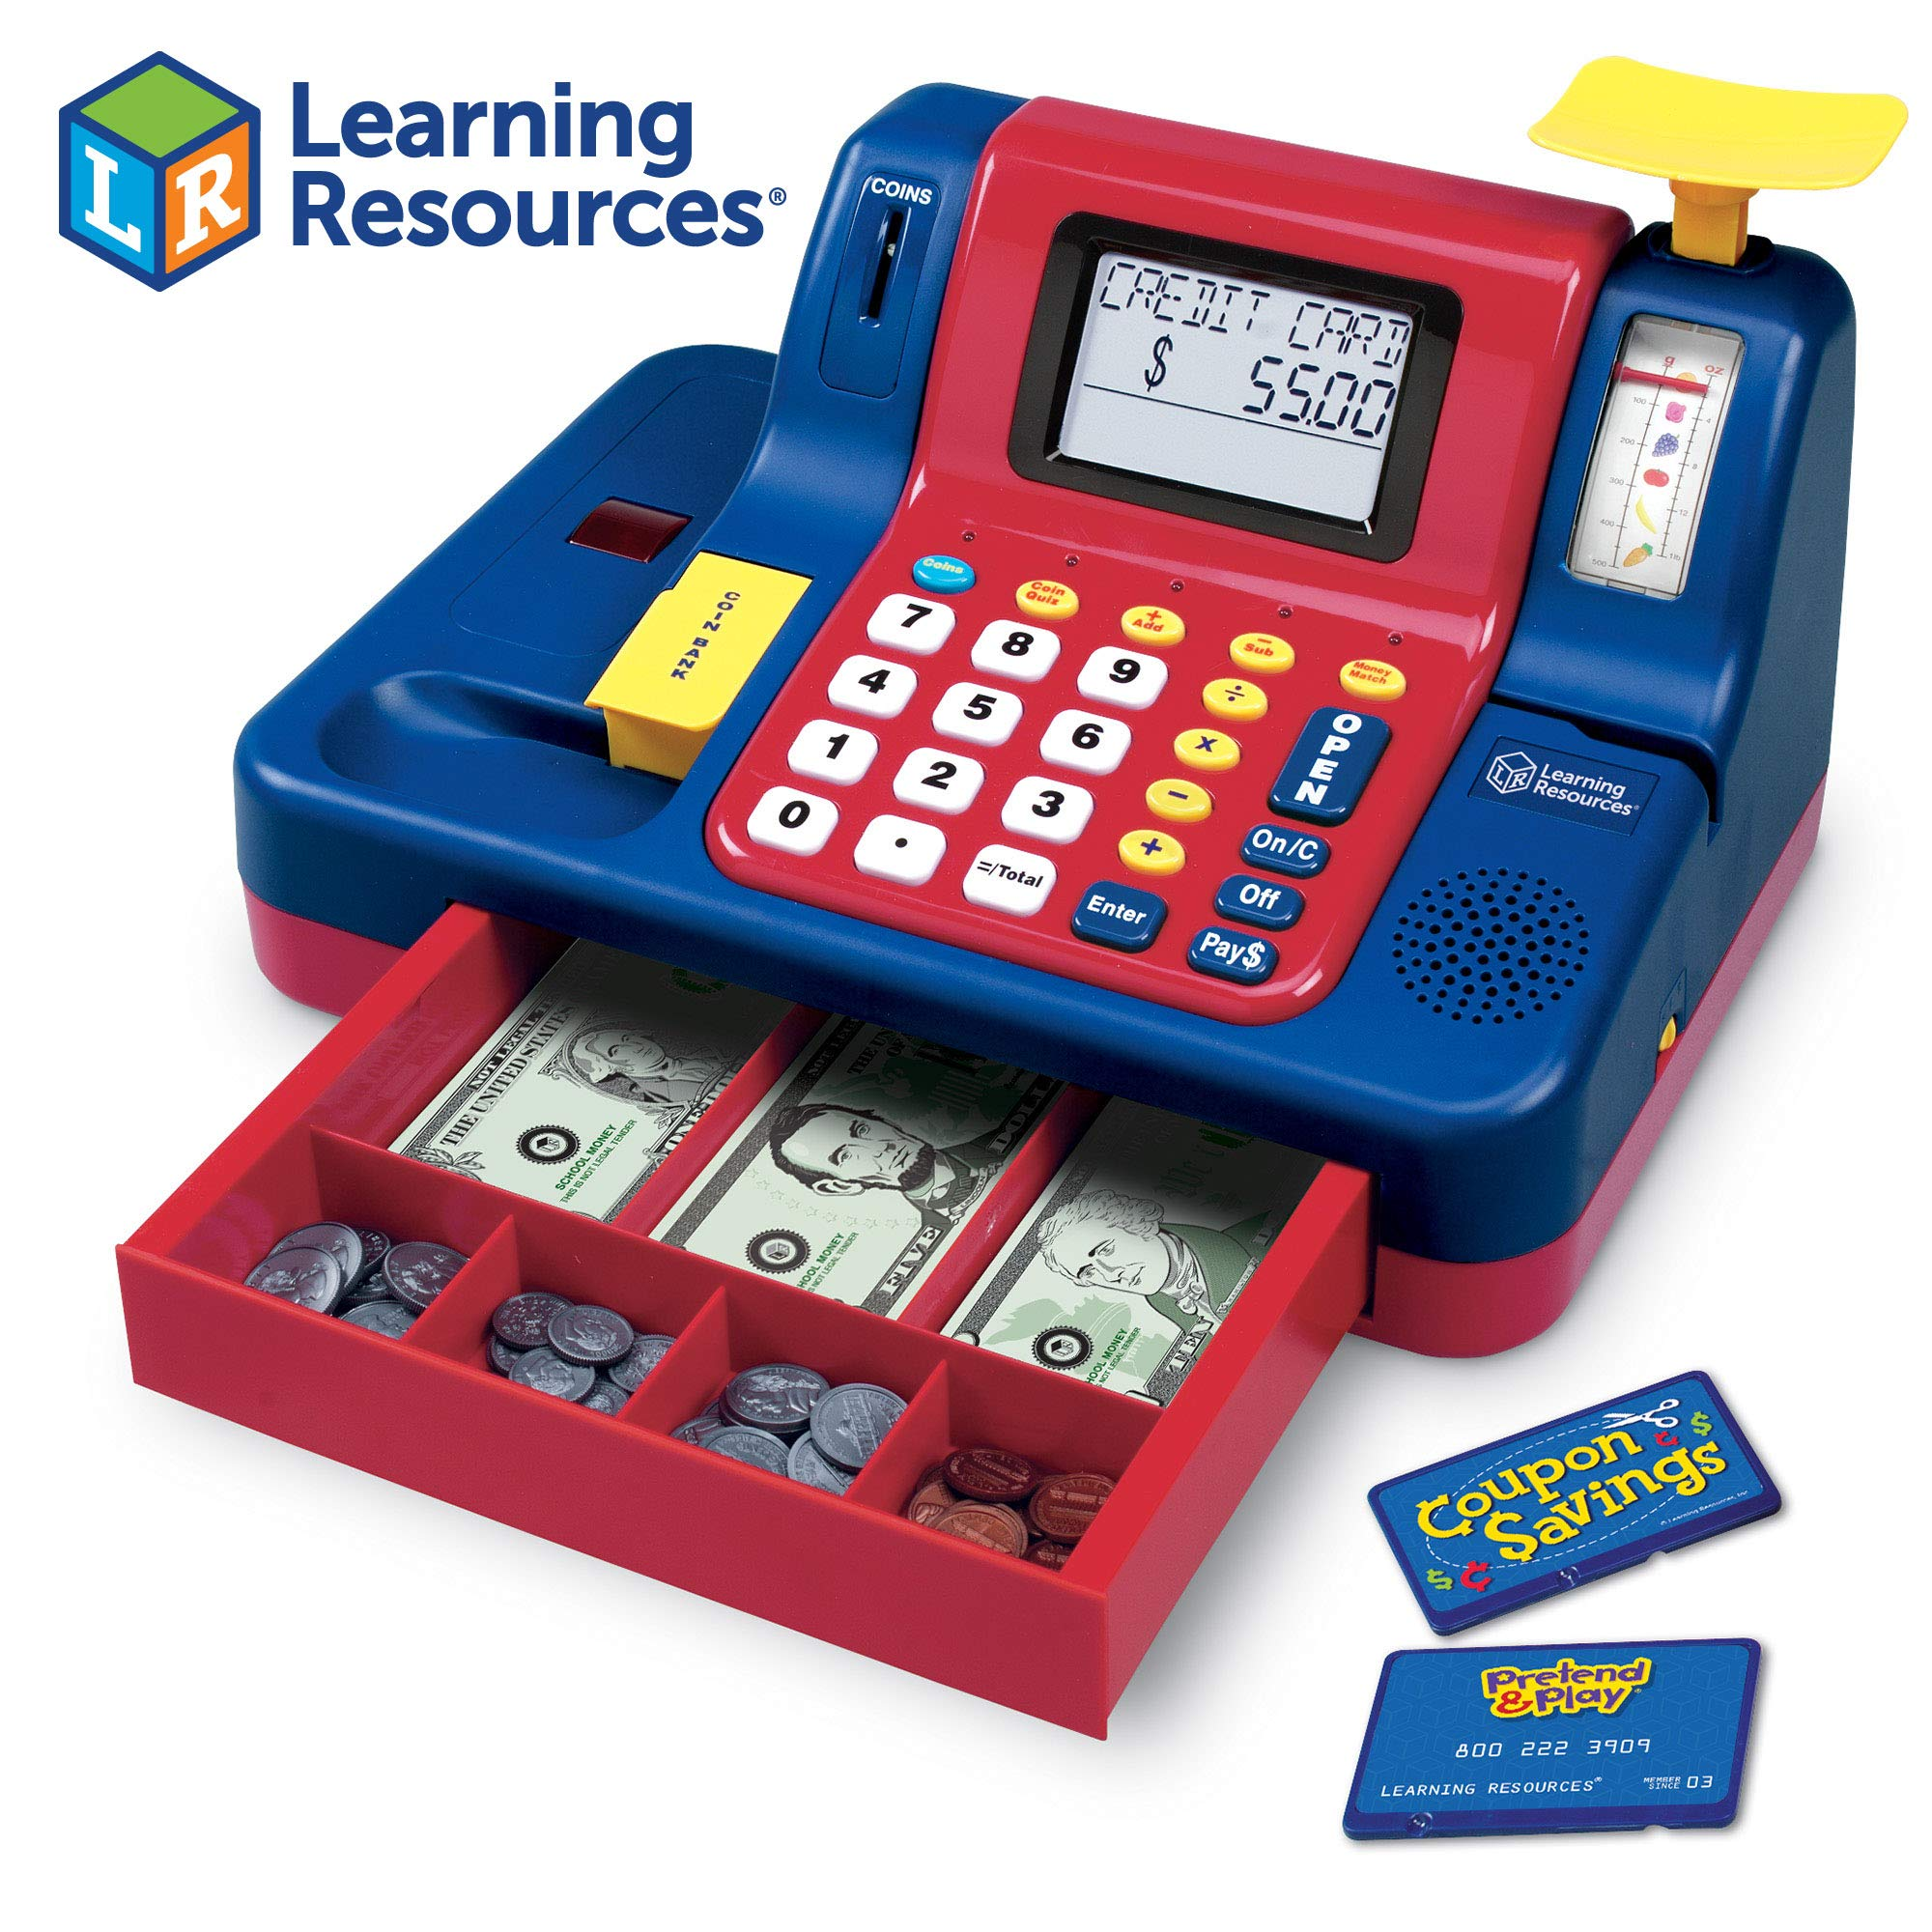 Learning Resources Pretend & Play Teaching Cash Register [Standard Packaging] by Learning Resources